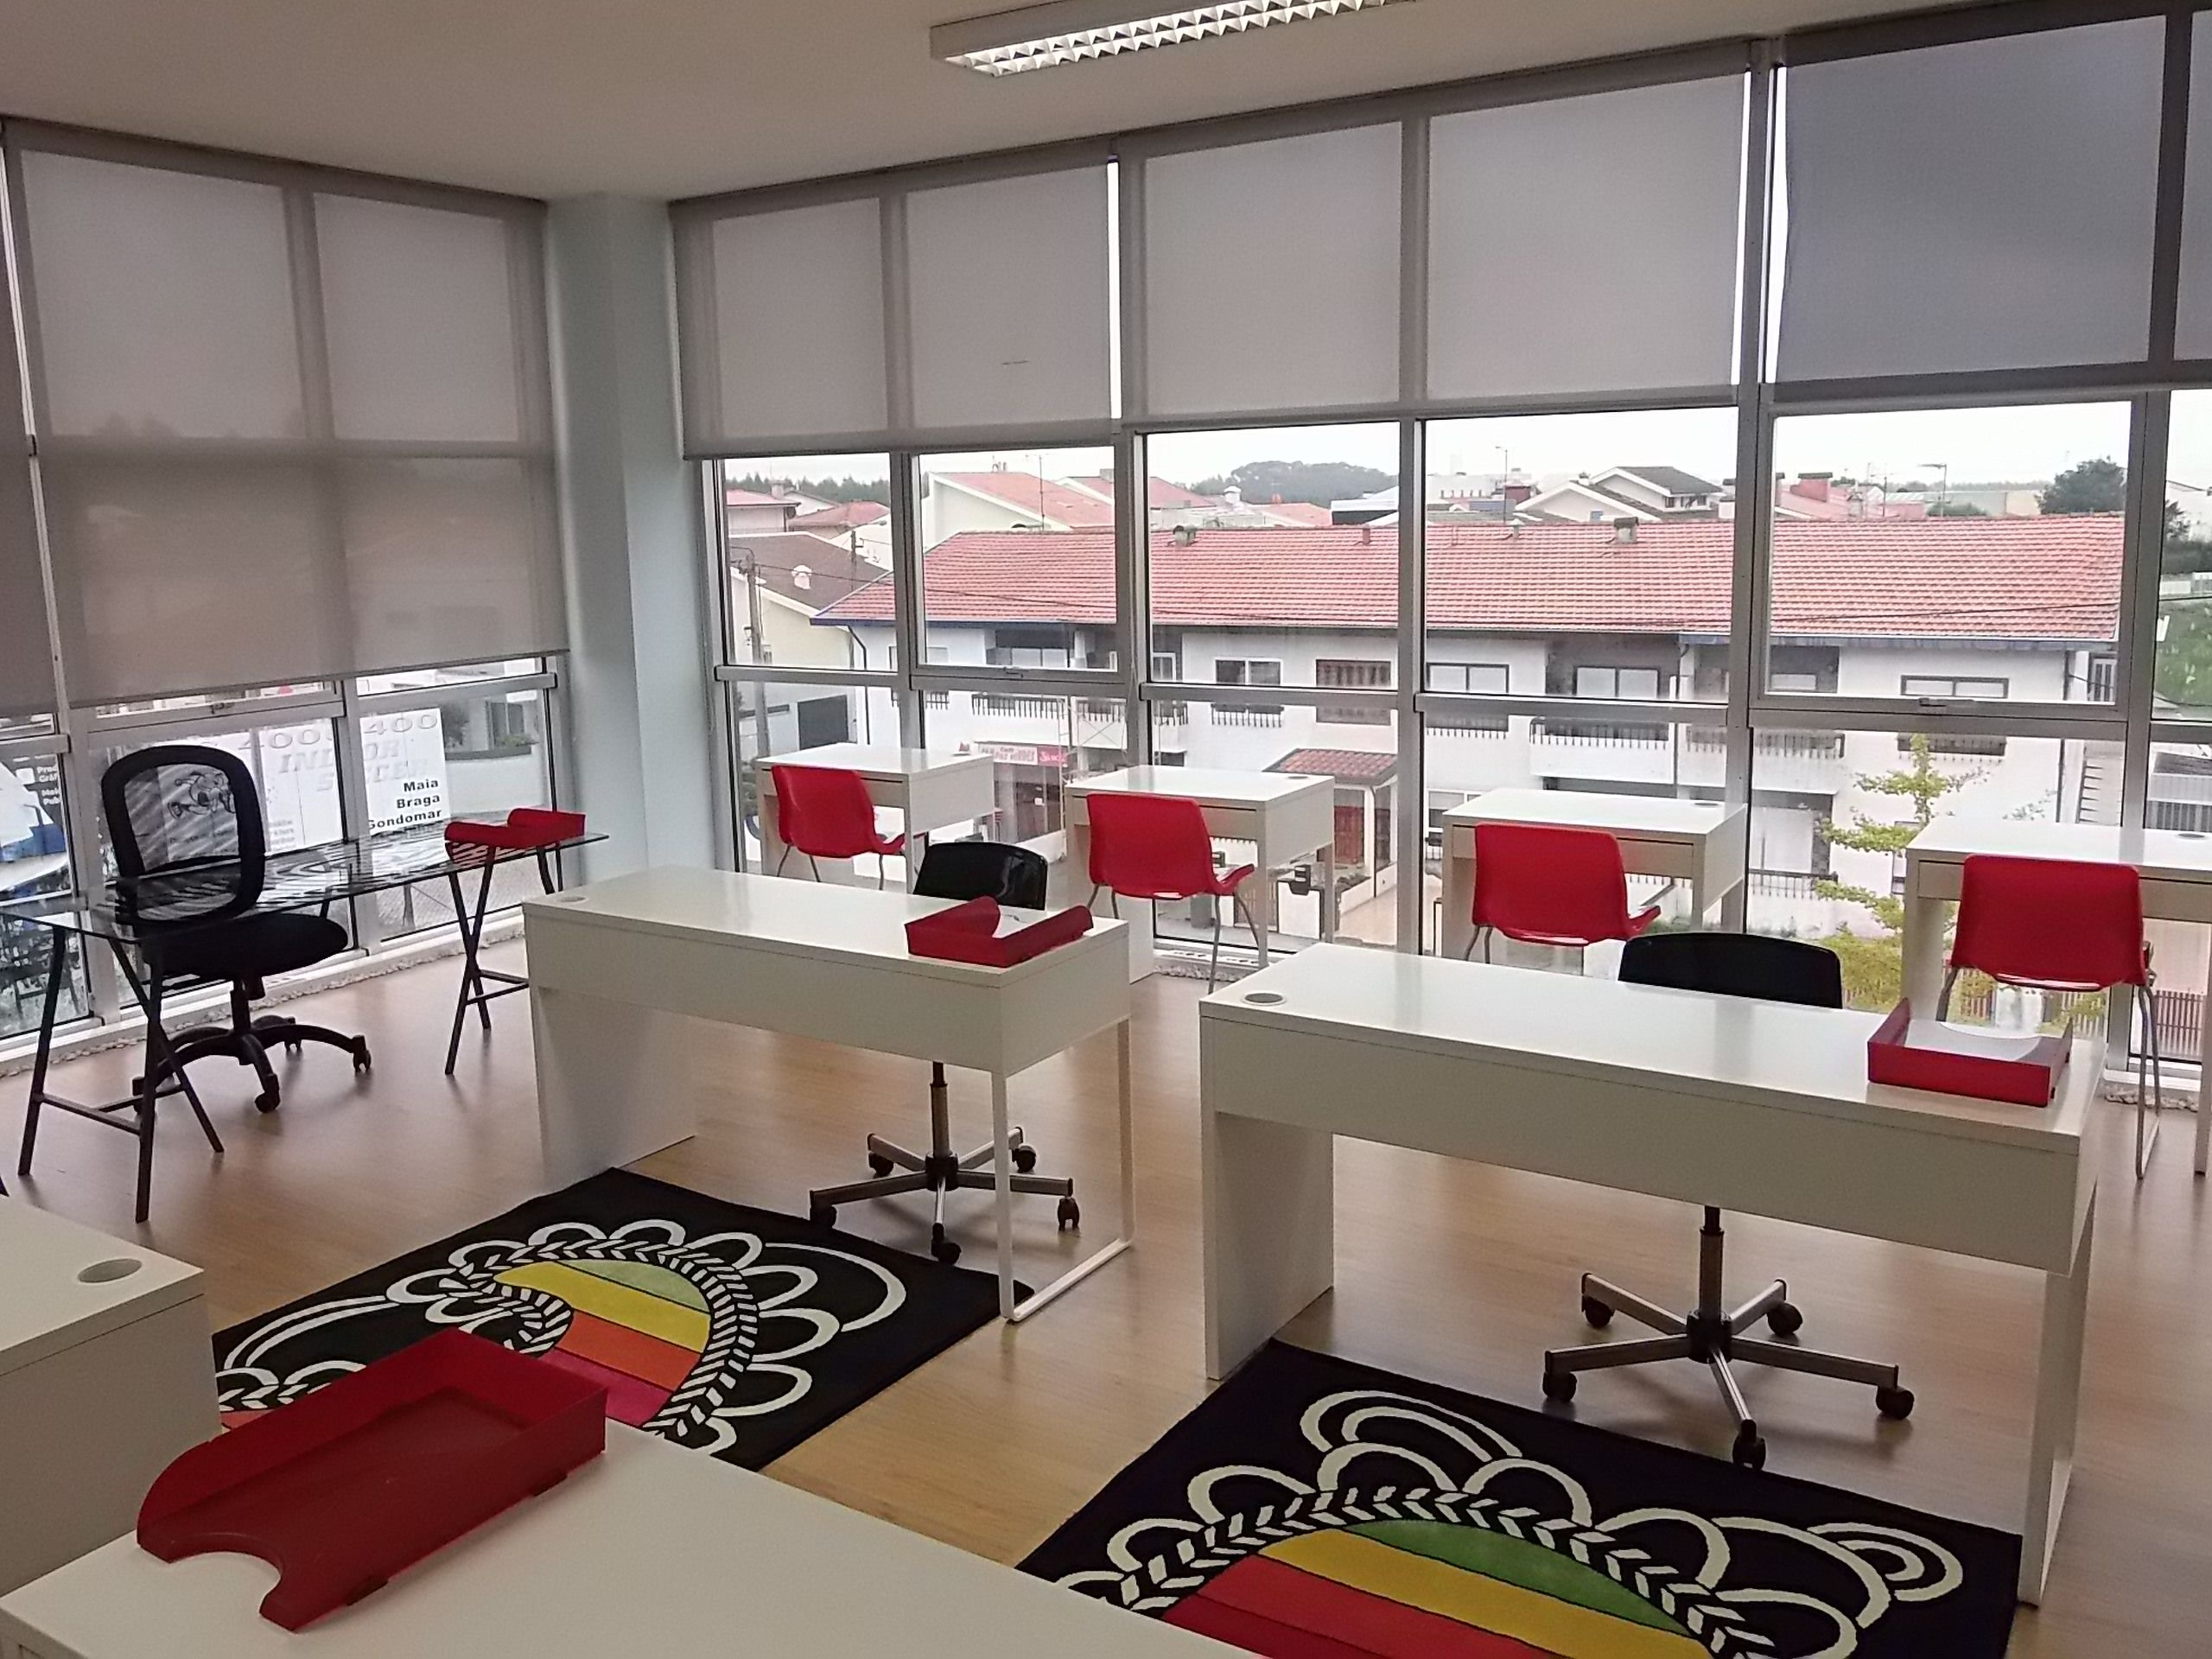 Businessbox lds coworking space in maia porto portugal spaces parisarafo Gallery